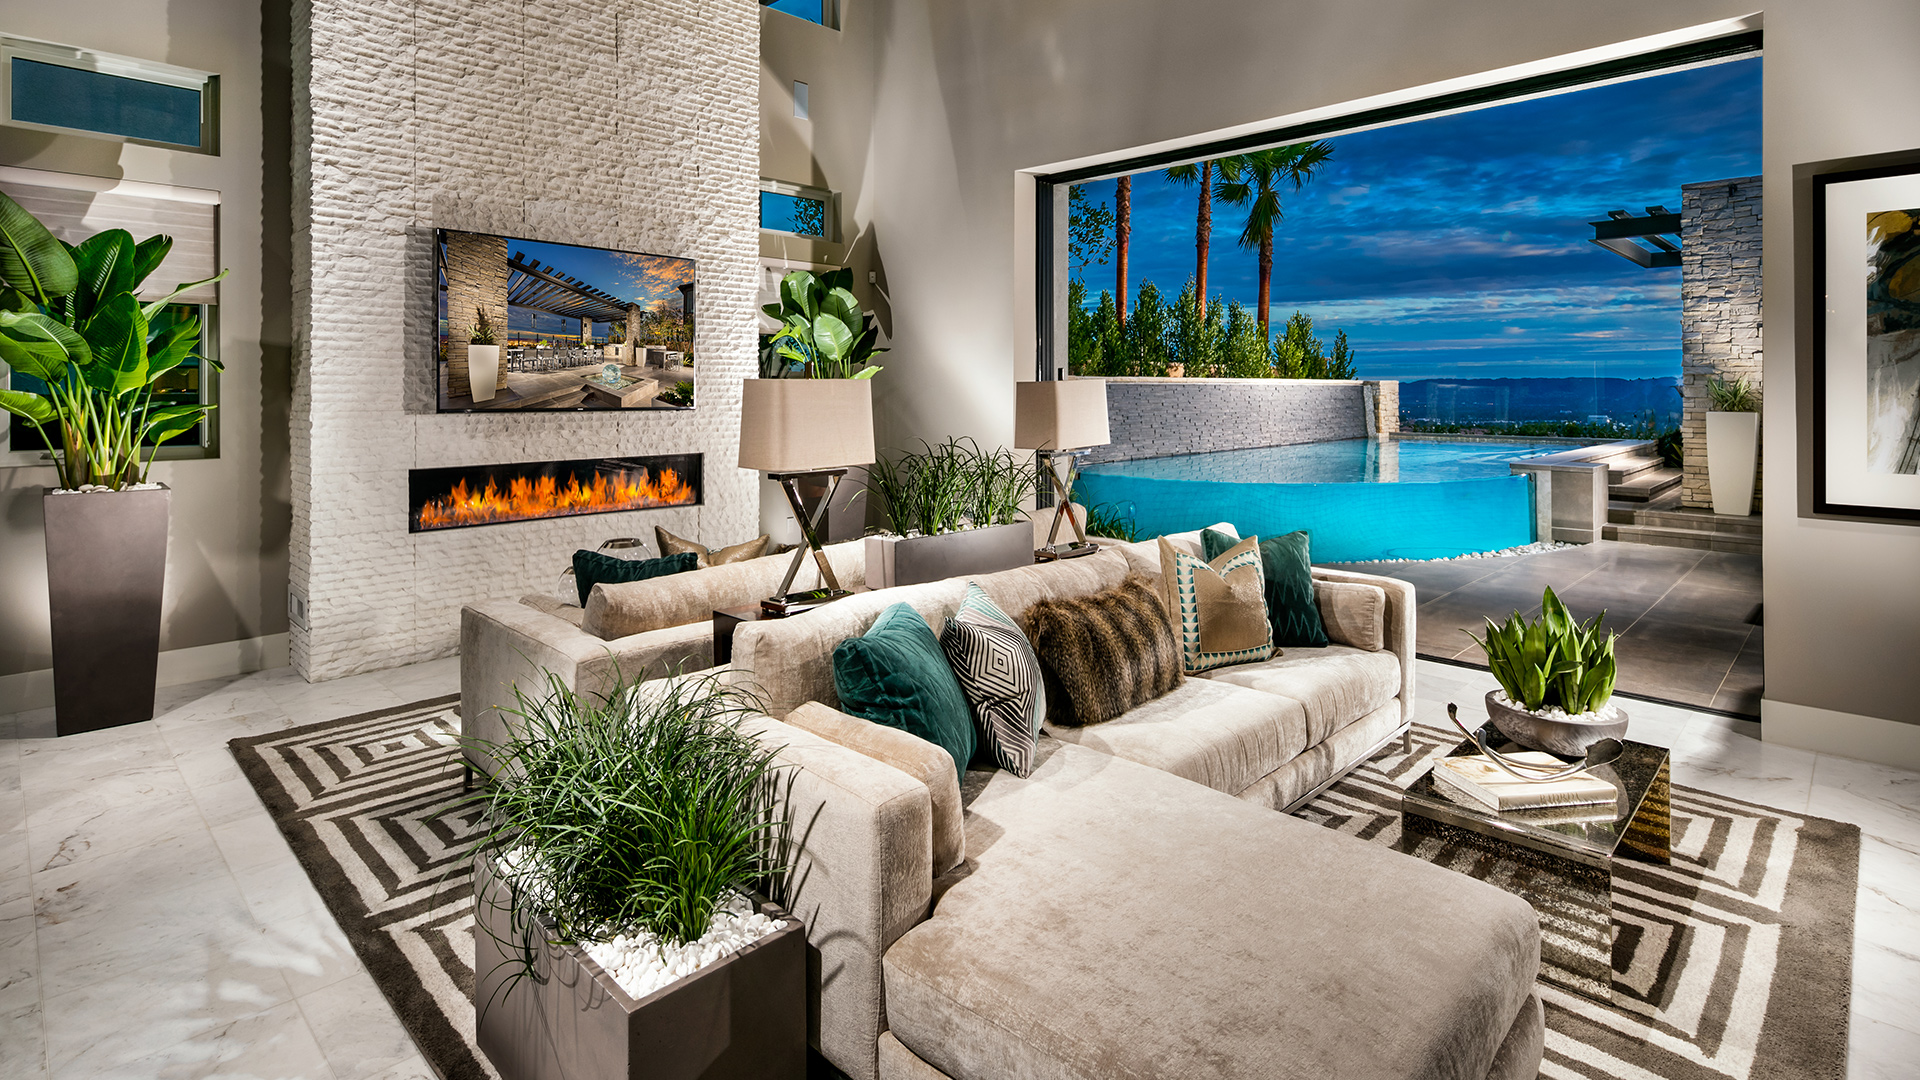 Grand great rooms with sliding glass wall opens to the California room perfect for enjoying indoor/outdoor living